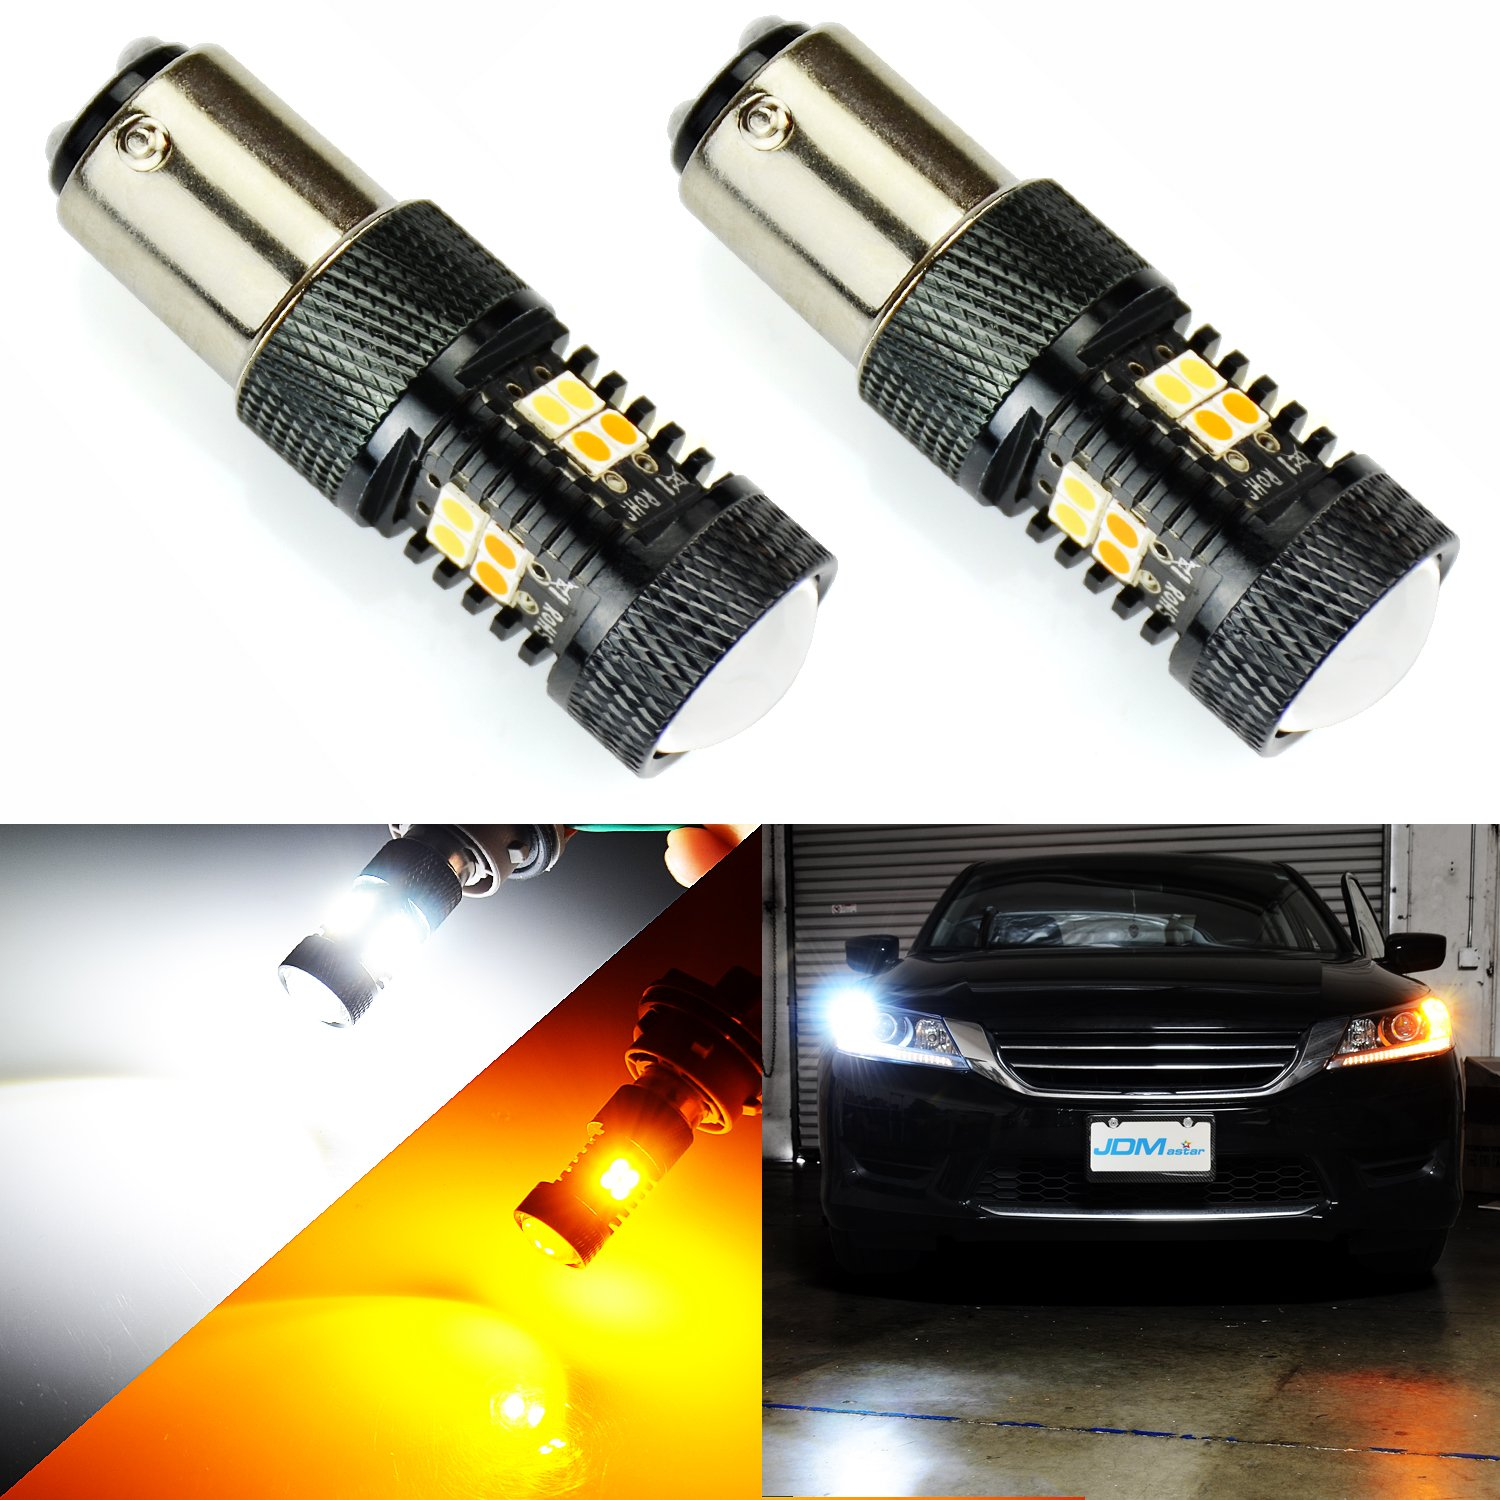 JDM ASTAR Extremely Bright 3030 Chipsets White/Yellow 1157 Switchback LED Bulbs with Projector For Turn Signal Lights